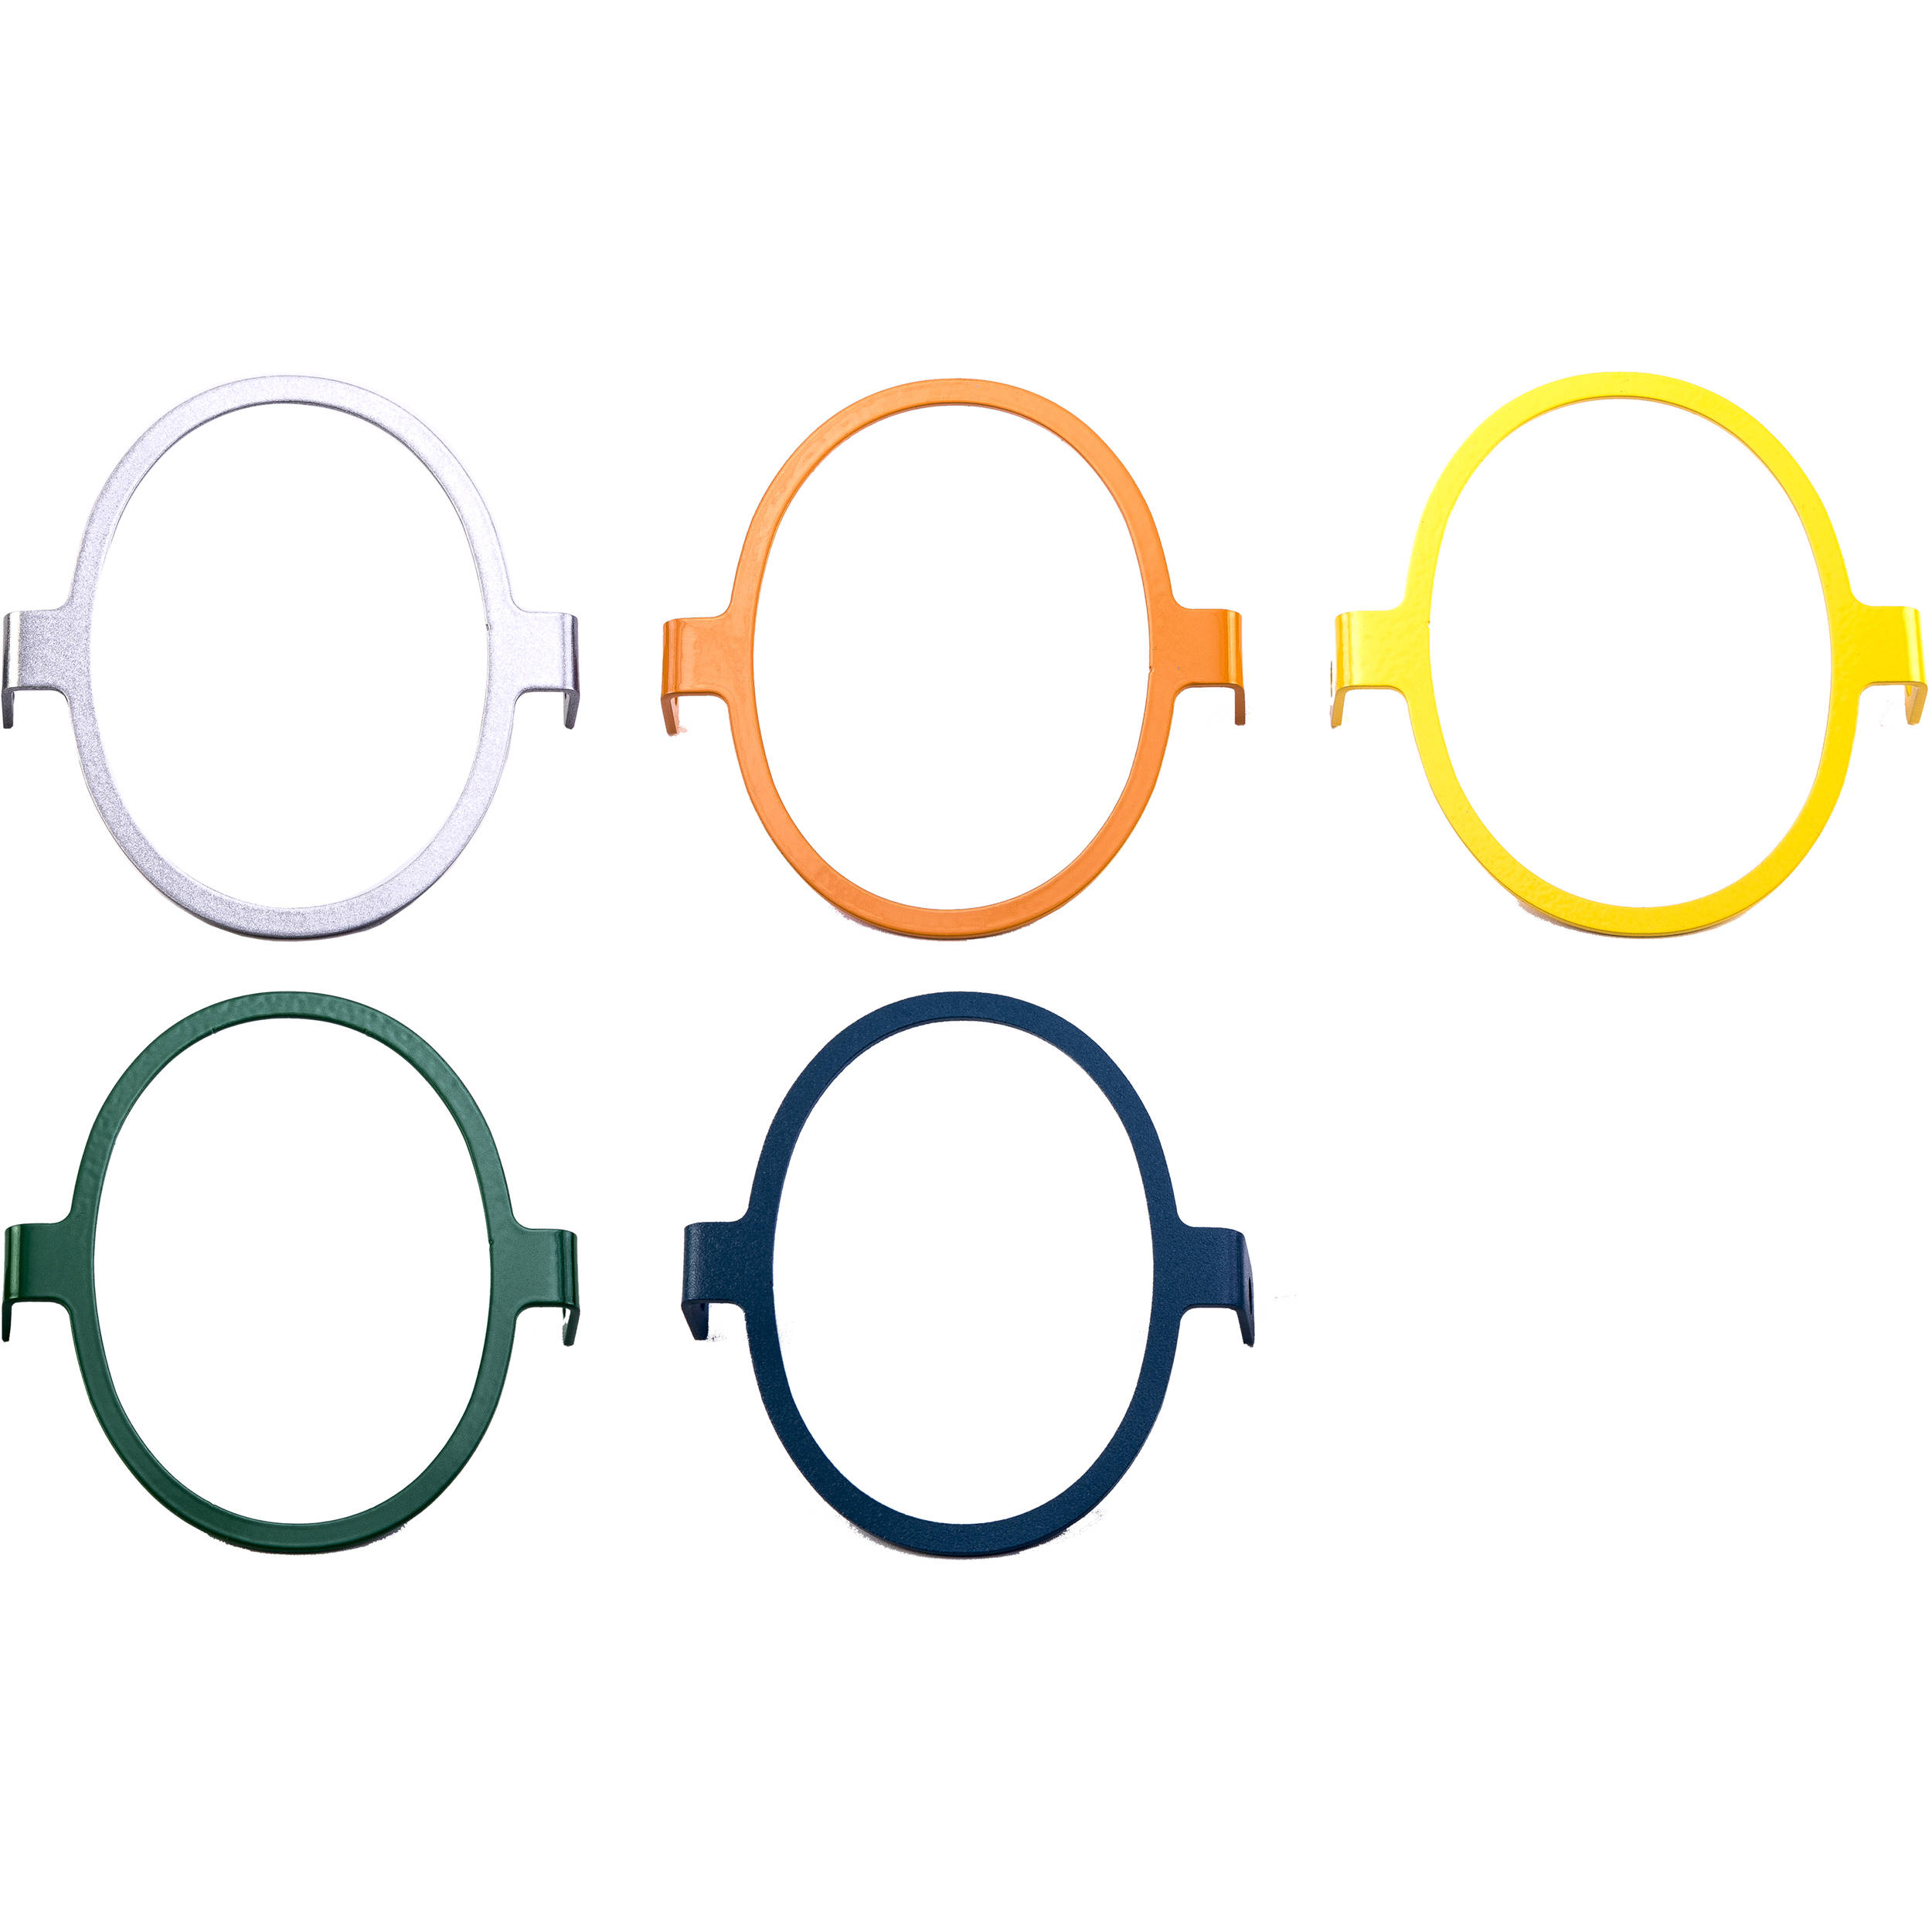 Https C Product 1378975 Reg Mower Deck Belt Diagram Group Picture Image By Tag Direct Sound Headphones Gstr5 5 Pack Groupsound Multi Colored Rings For 1372482